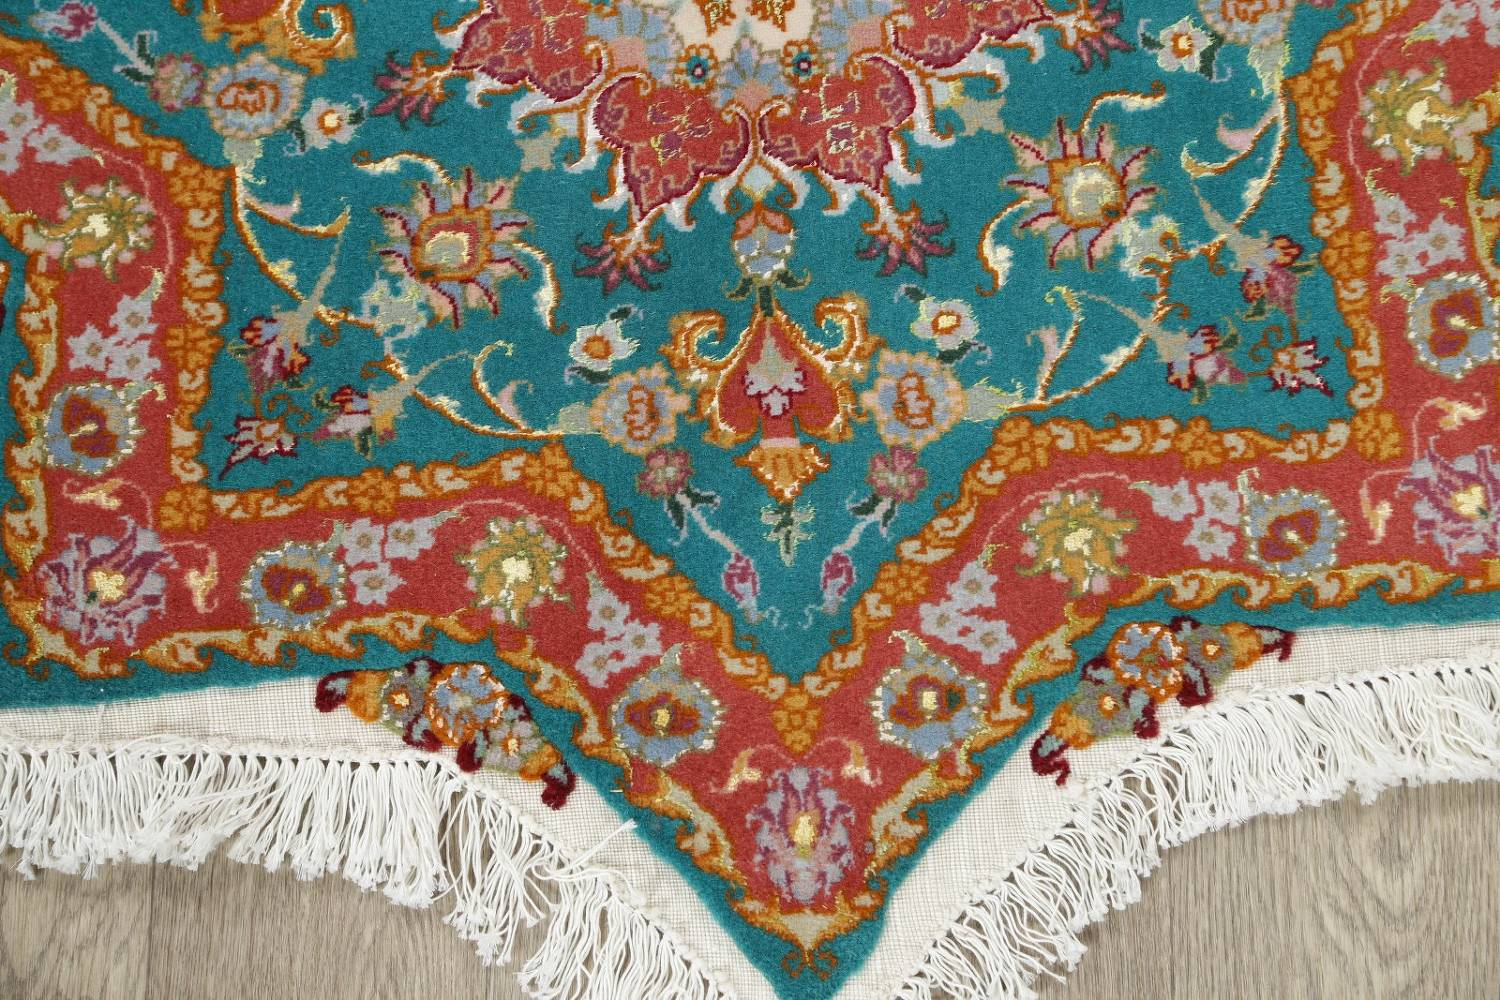 Floral Teal Tabriz Persian Hand-Knotted 3x3 Wool Silk Star Rug image 5